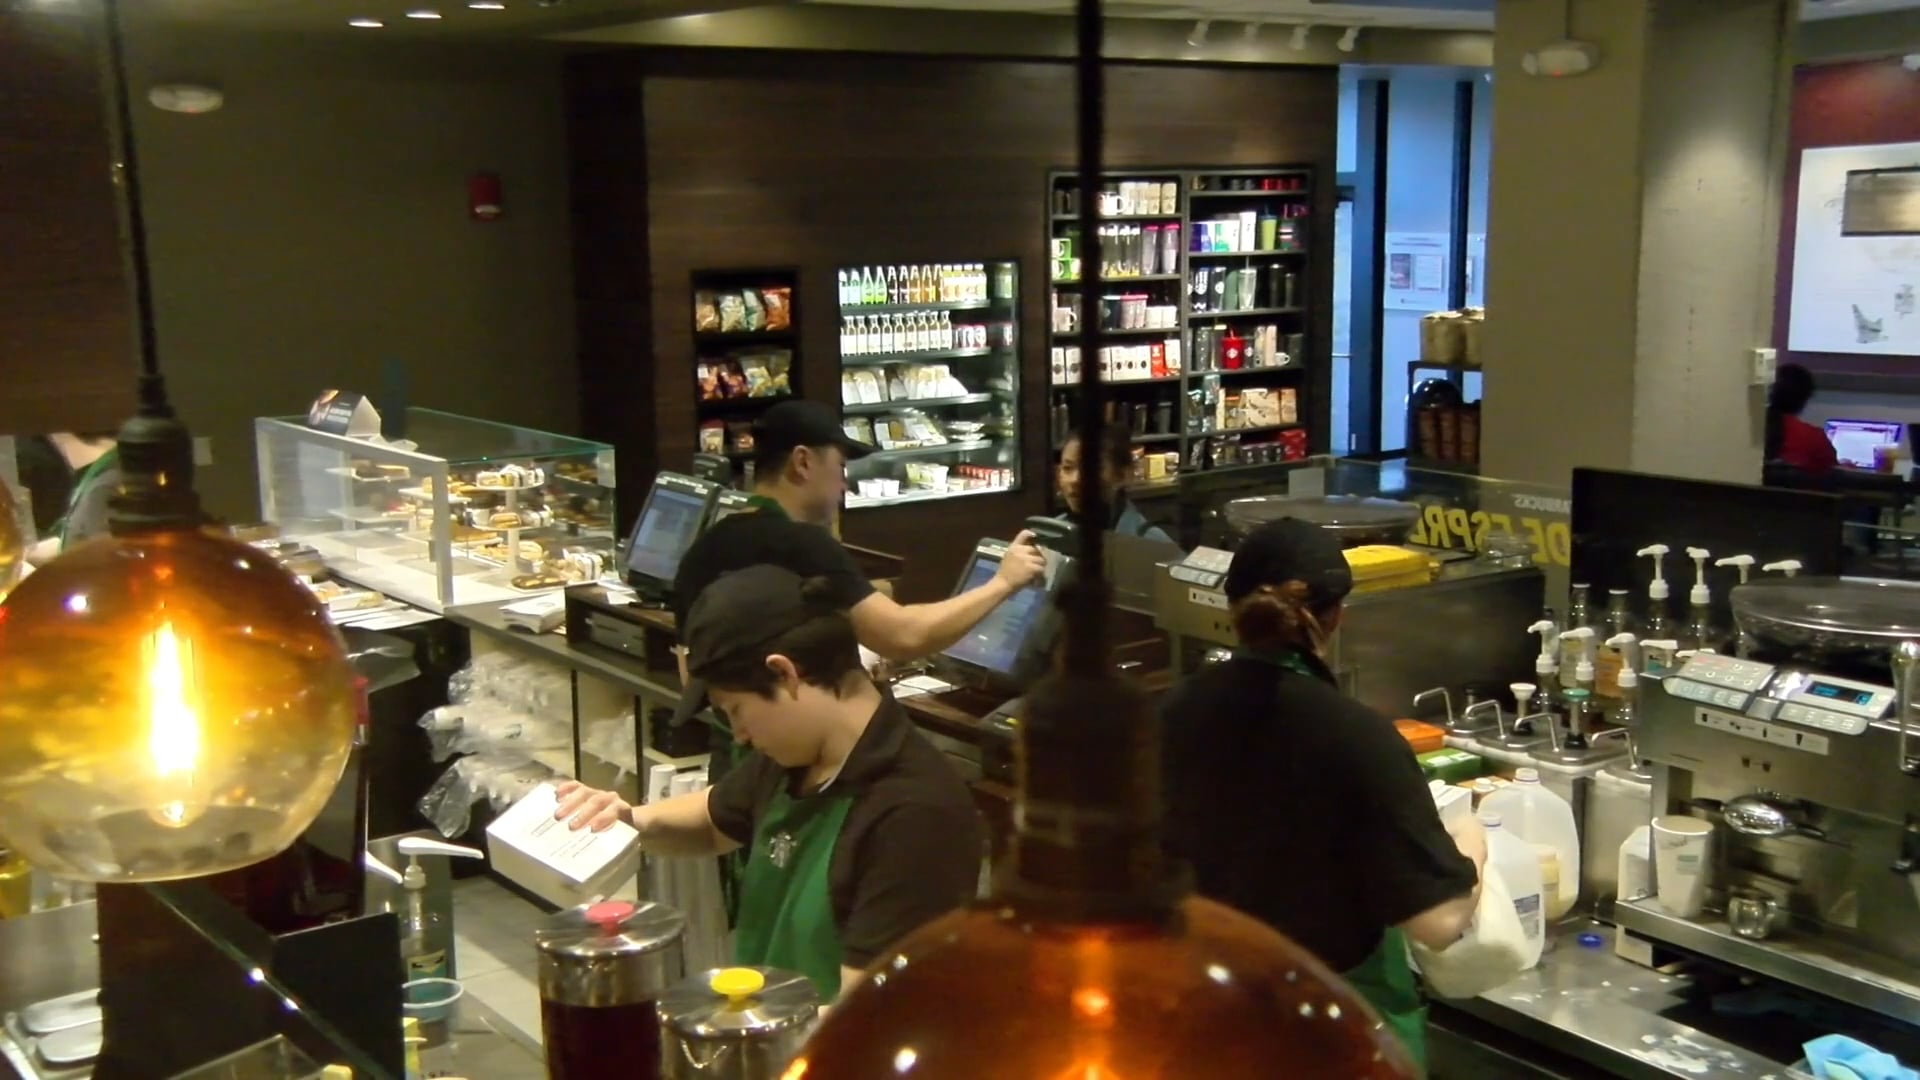 Stony Brook Newscast: Get App at Starbucks